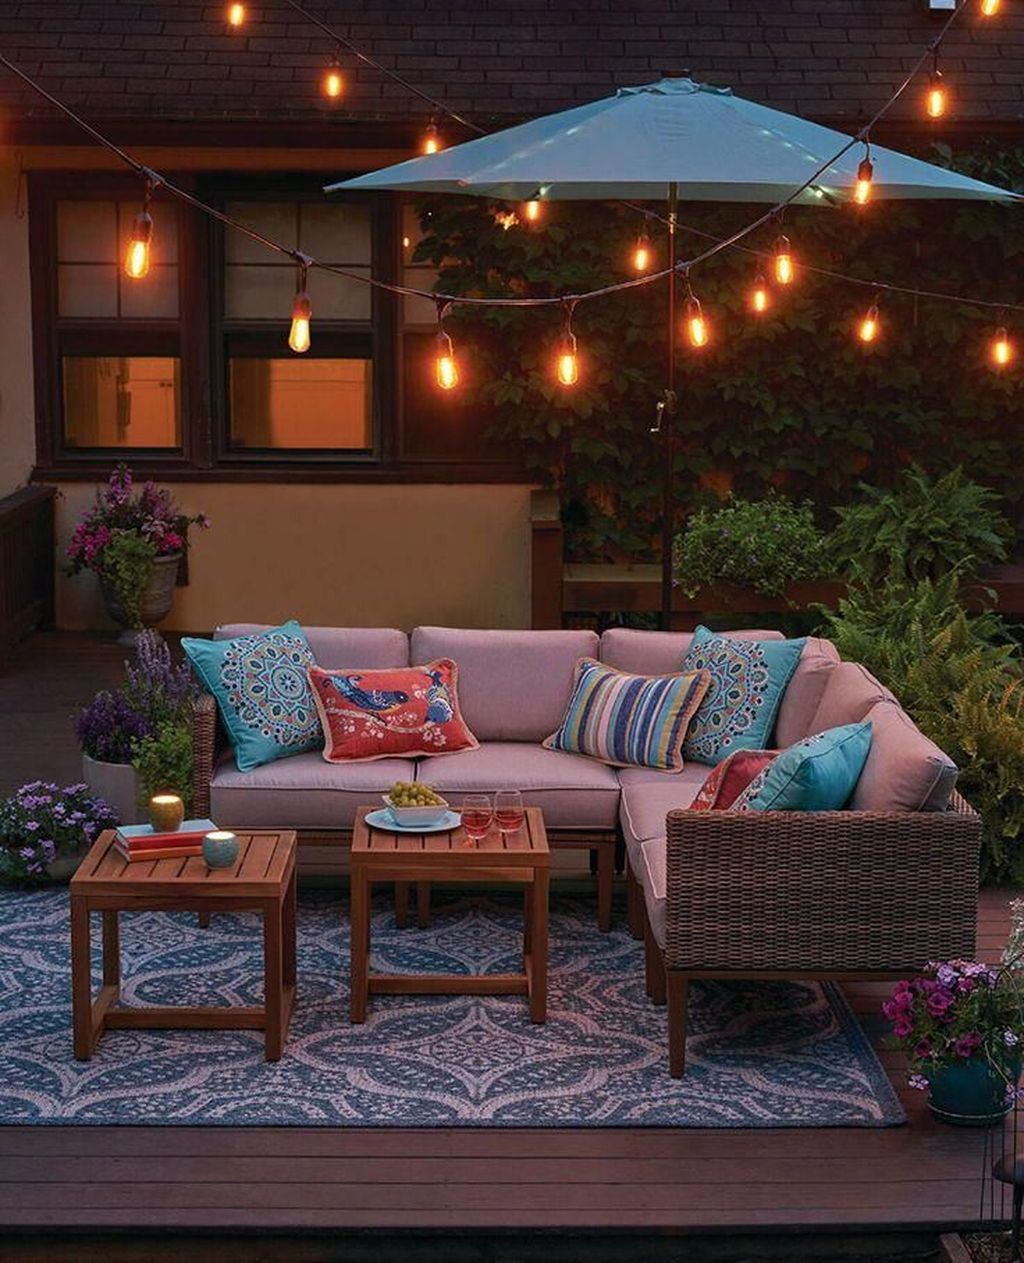 Admirable Cozy Patio Design Ideas To Relaxing On A Sunny Day 13